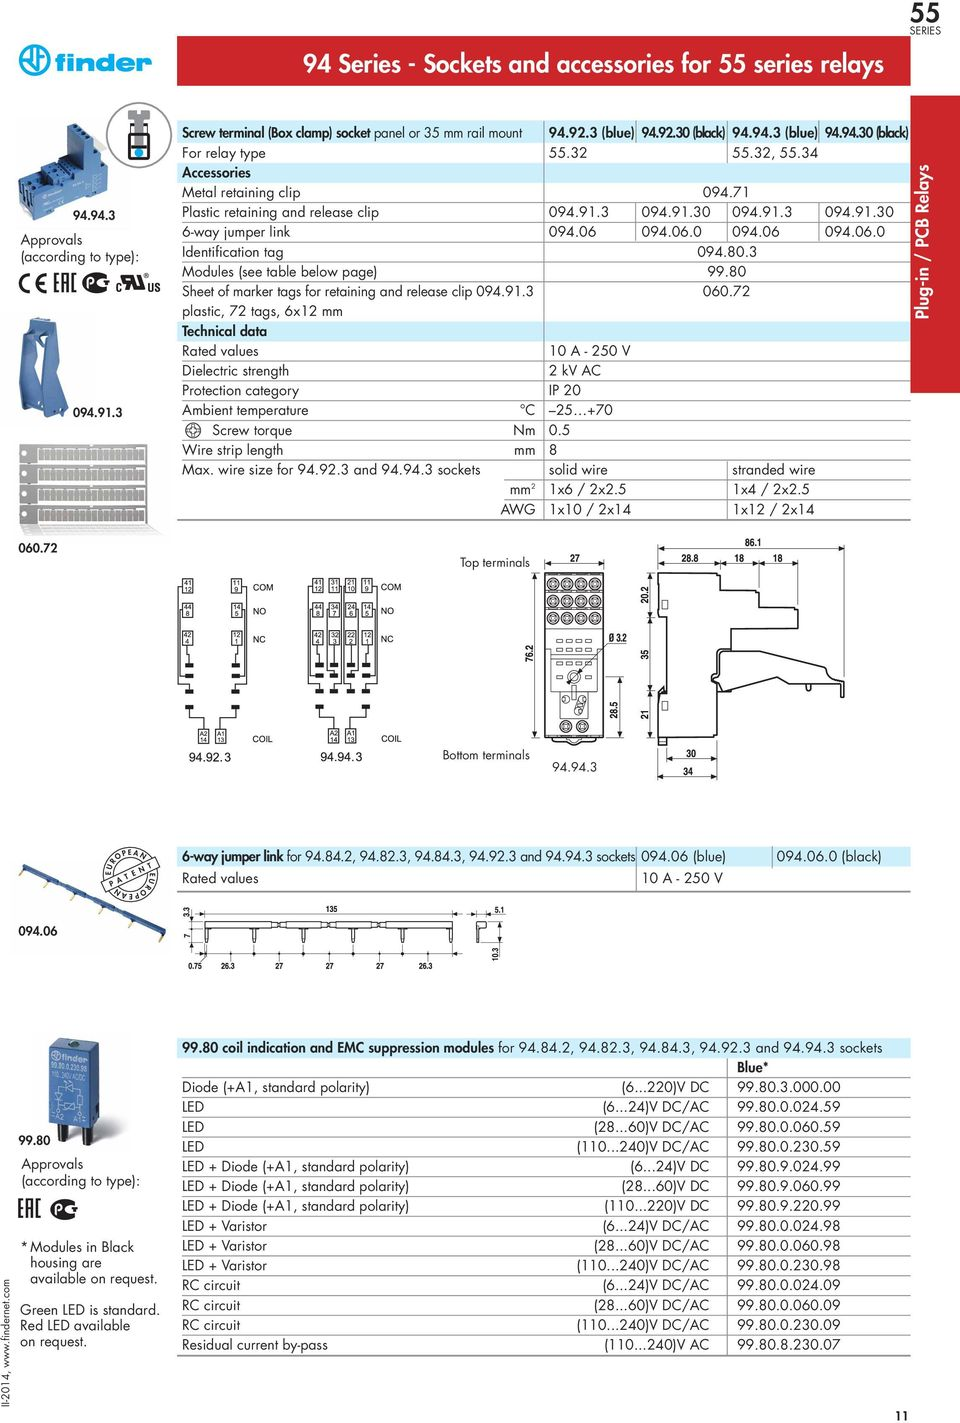 3 Modules (see table below page) 99.80 Sheet of marker tags for retaining and release clip 094.91.3 060.